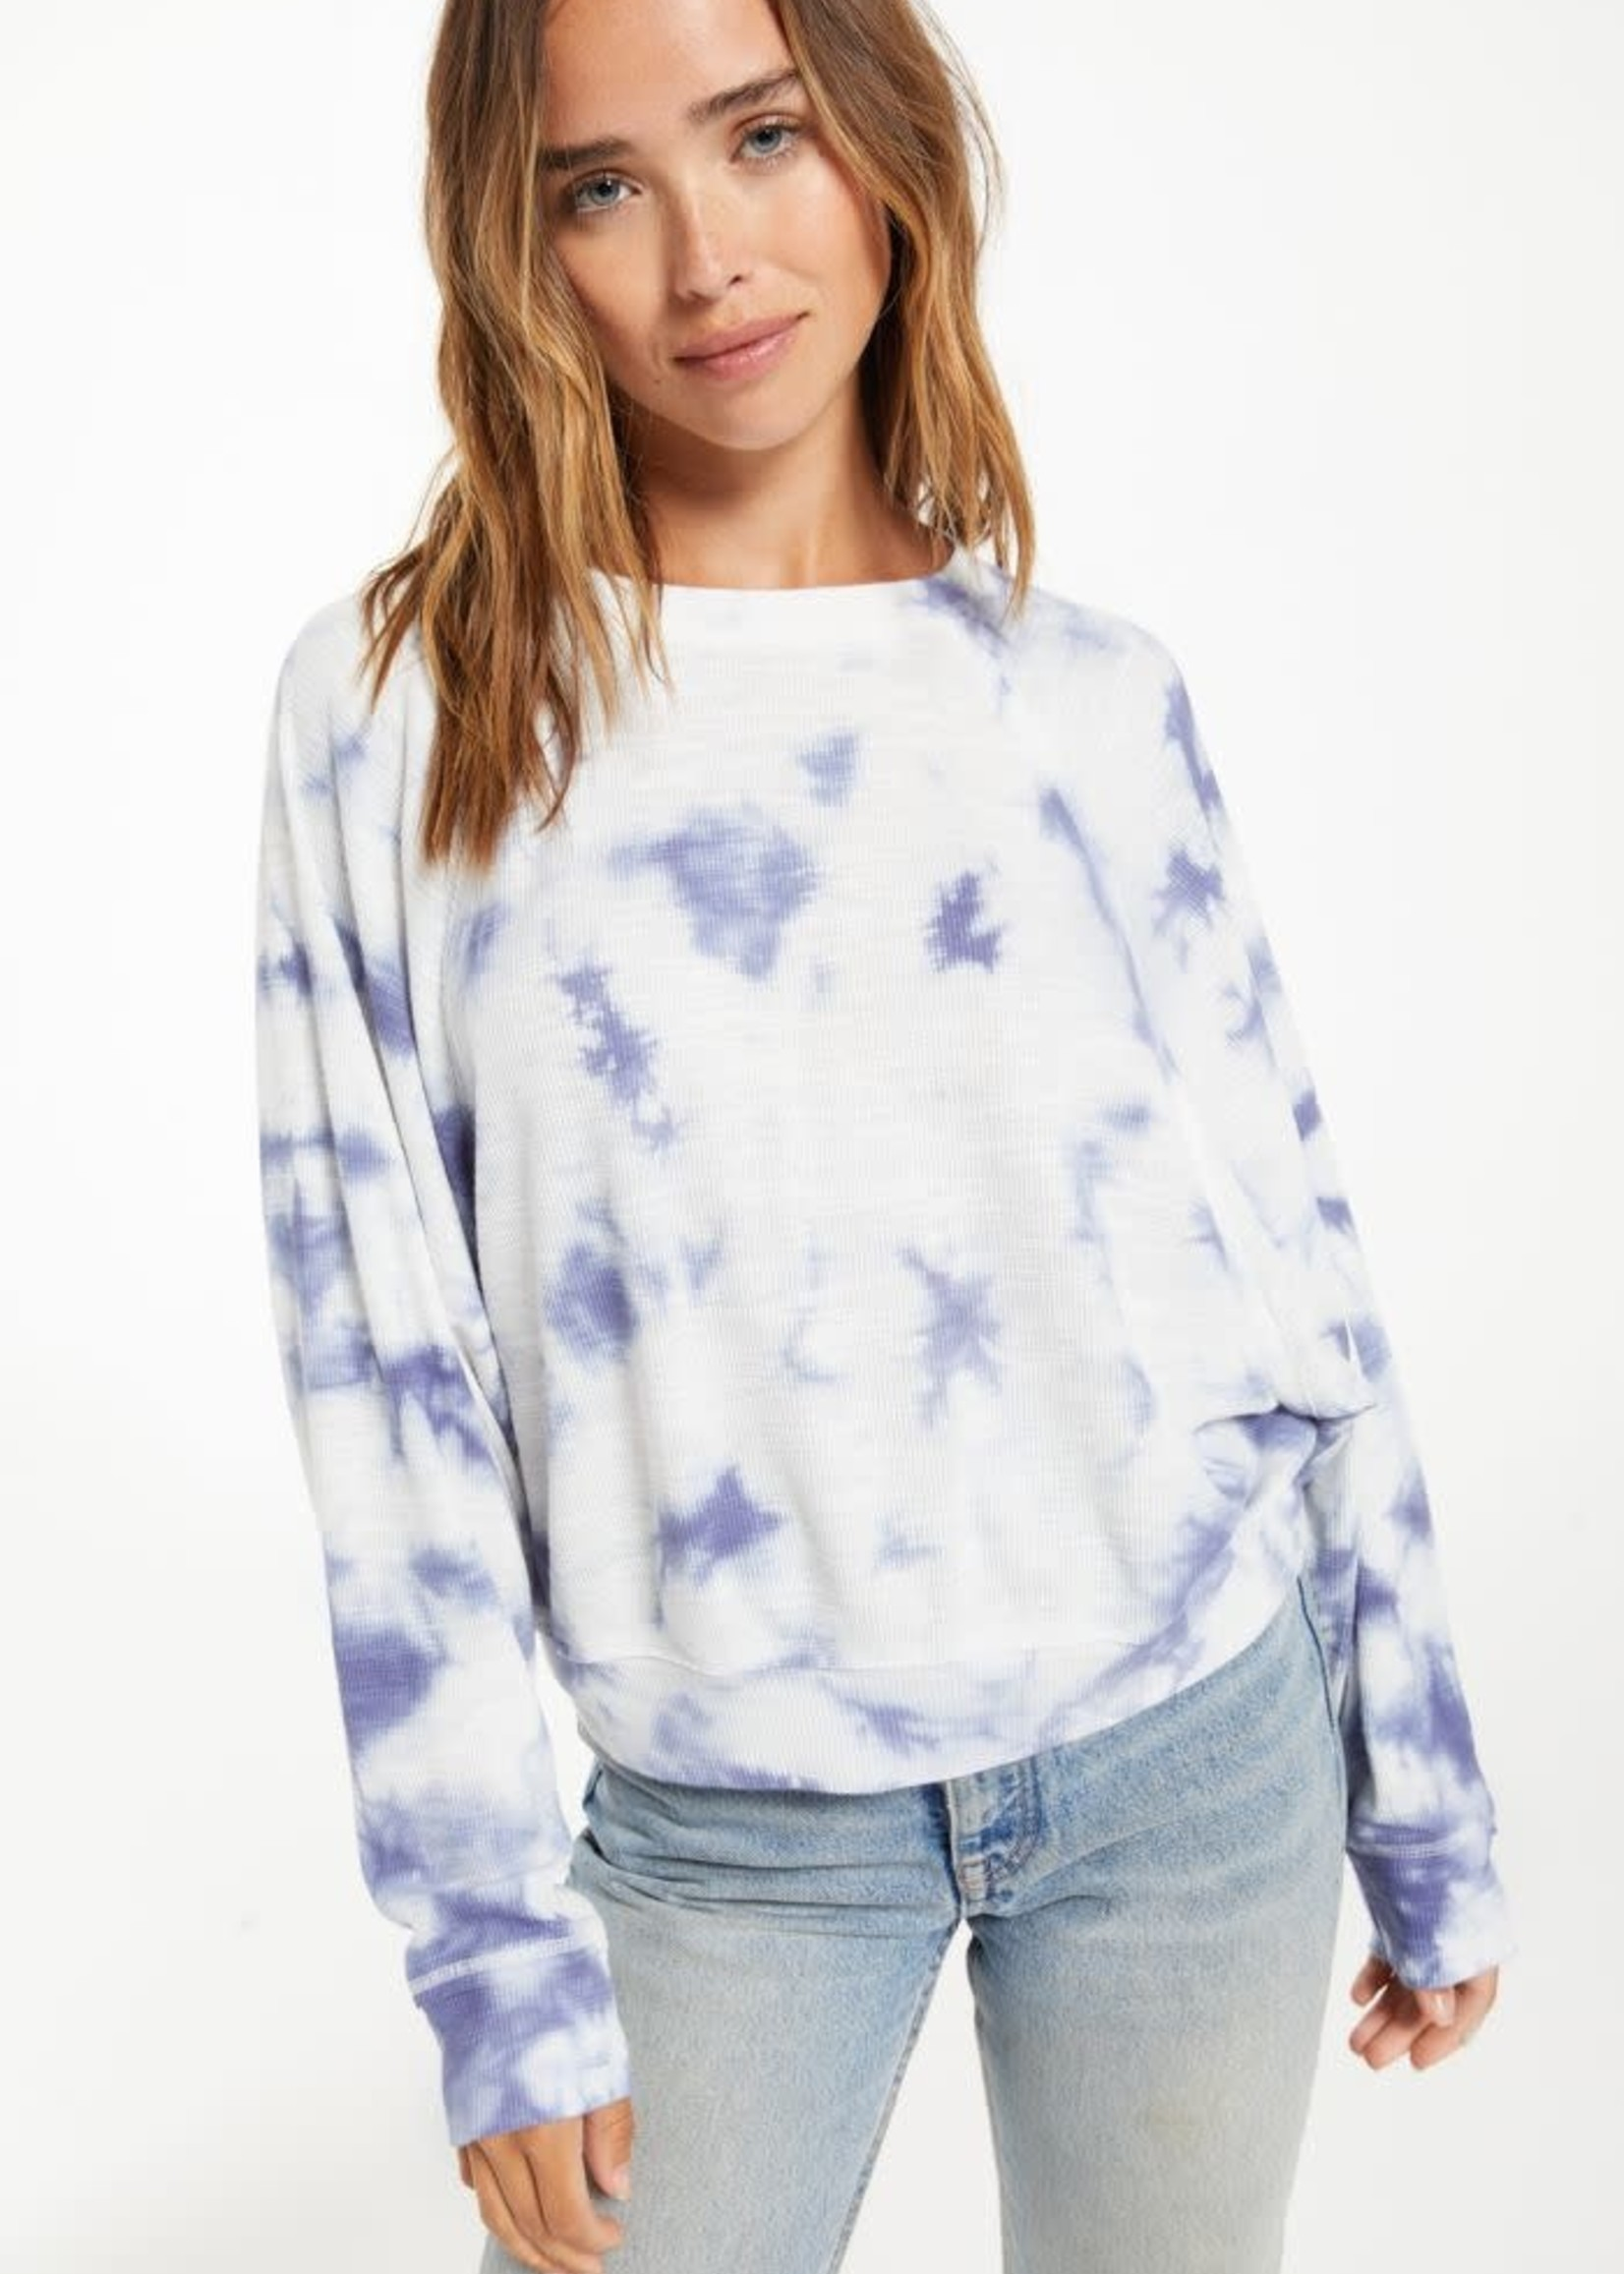 Z Supply Claire Tie Dye Top